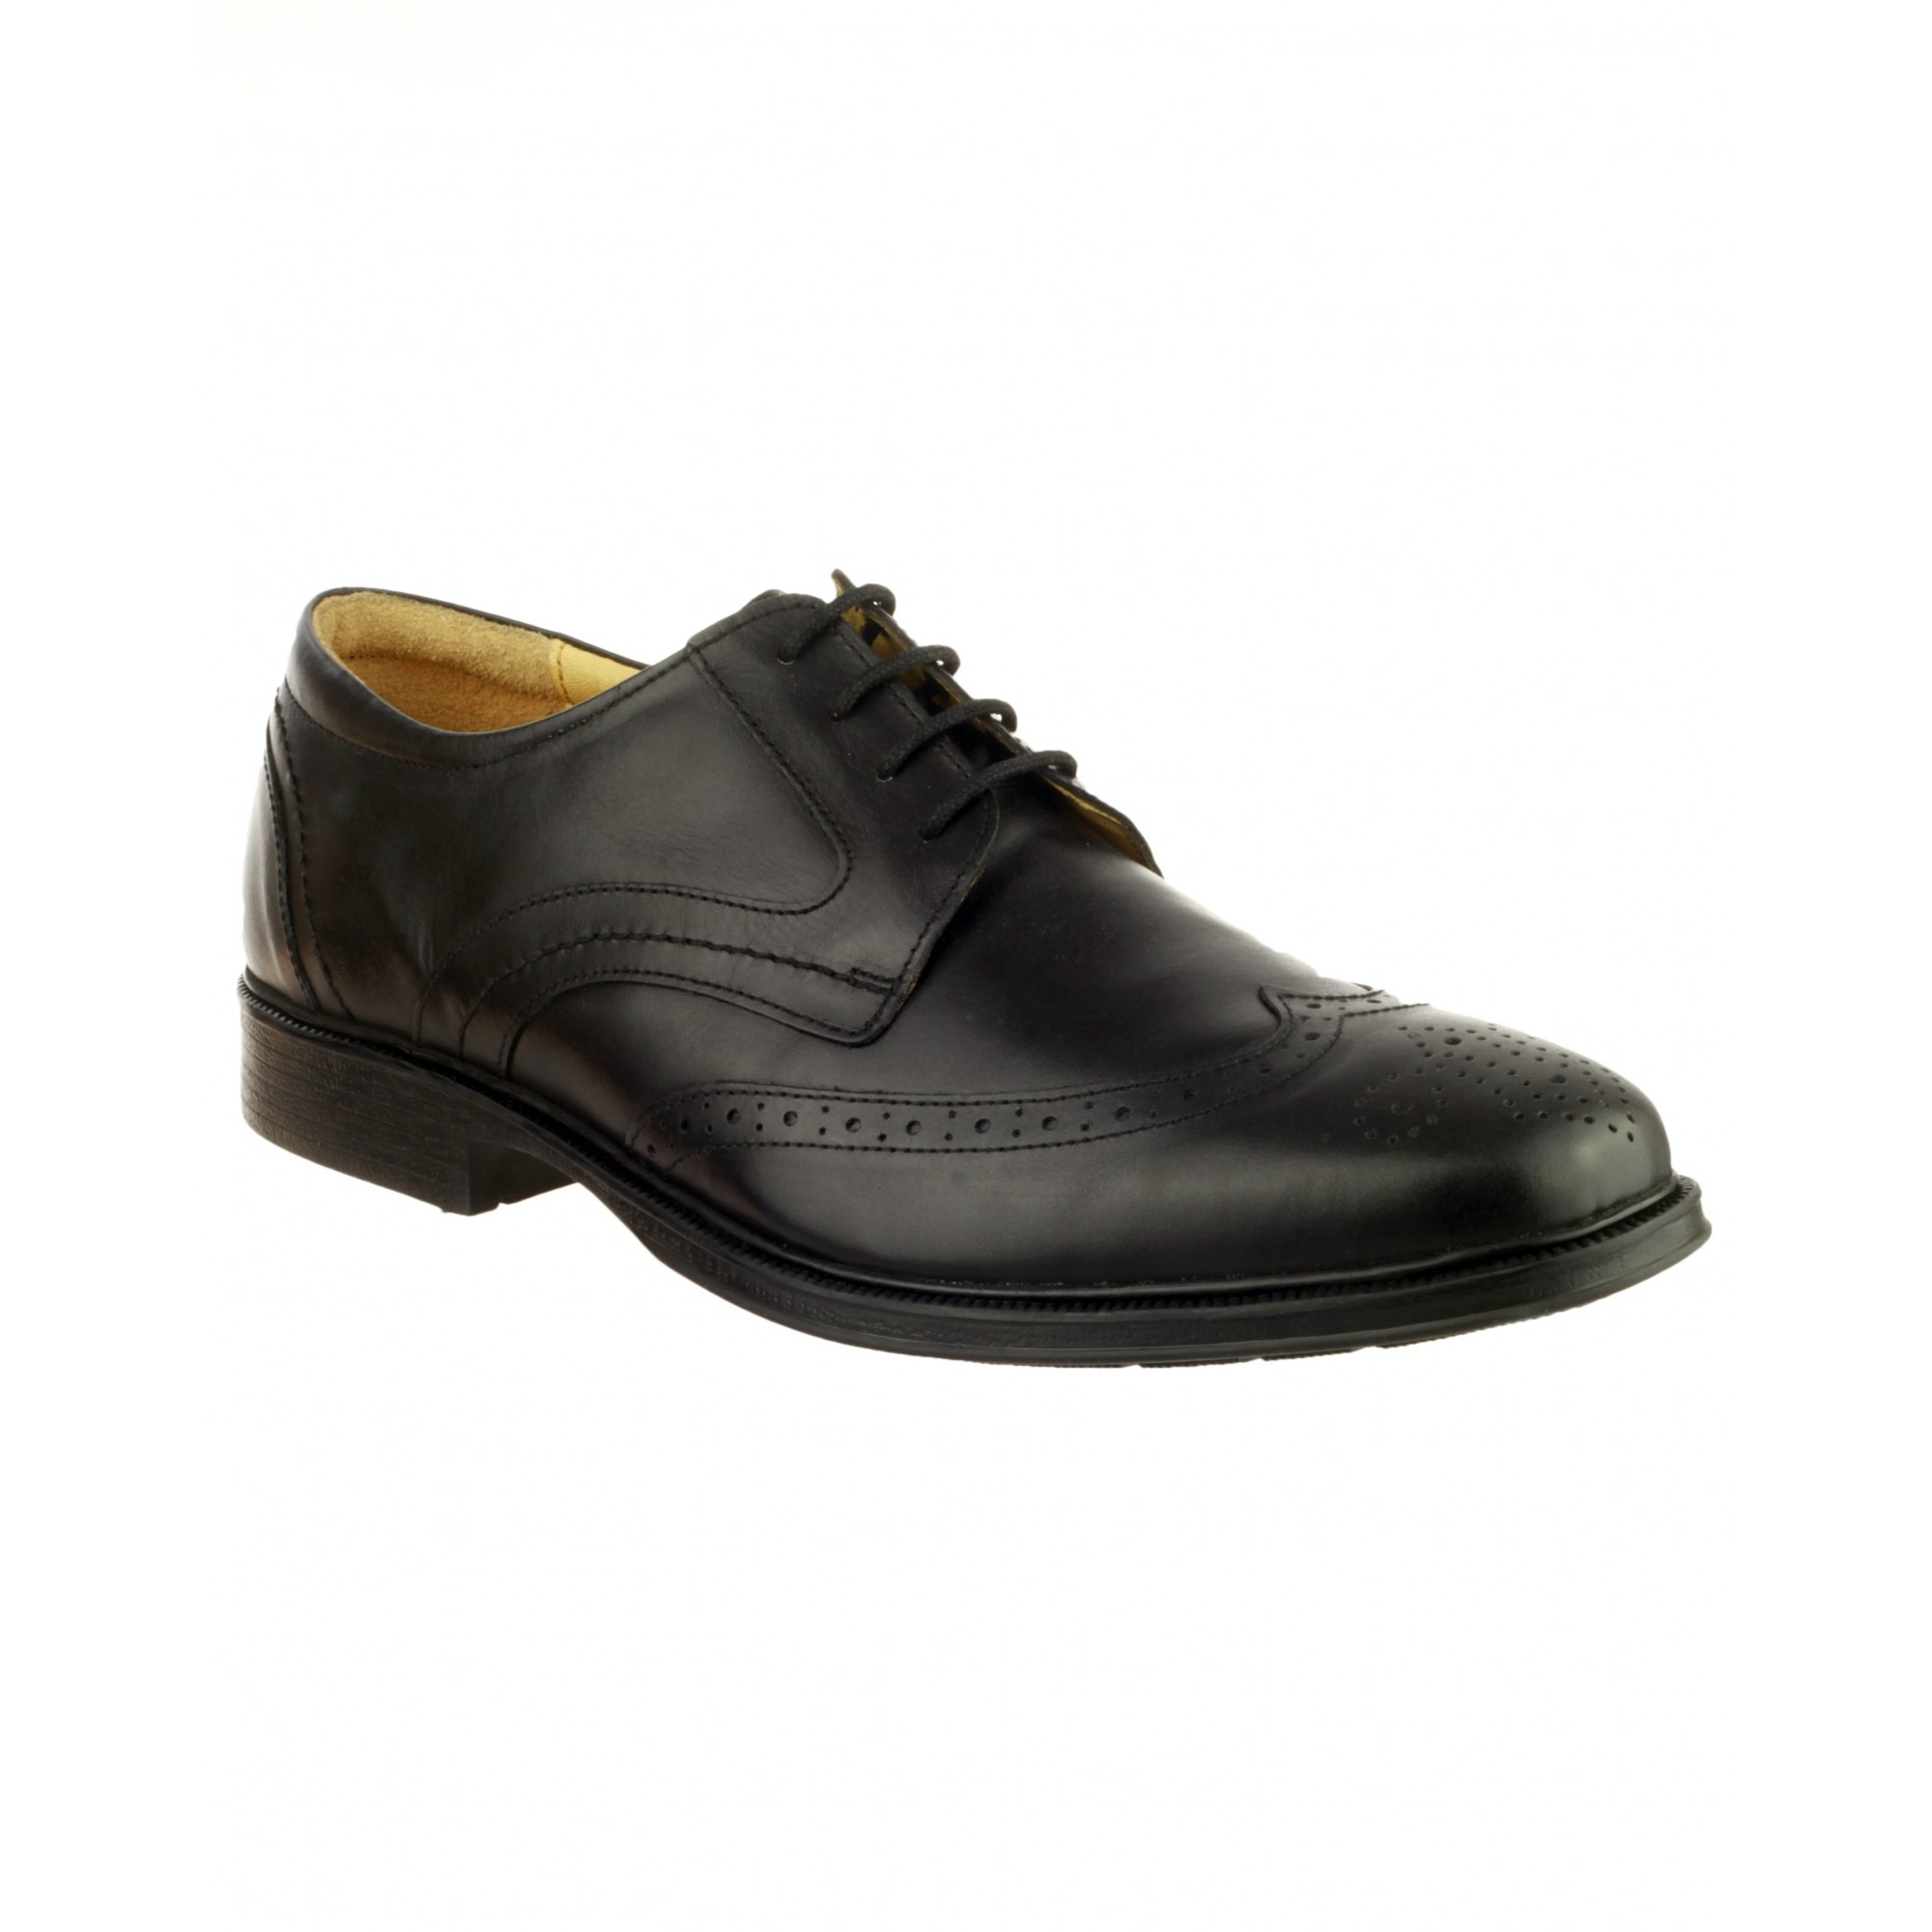 Cotswold Mickleton Mens Leather Lace Up Gibson Formal Dress Oxford Style Shoes | EBay